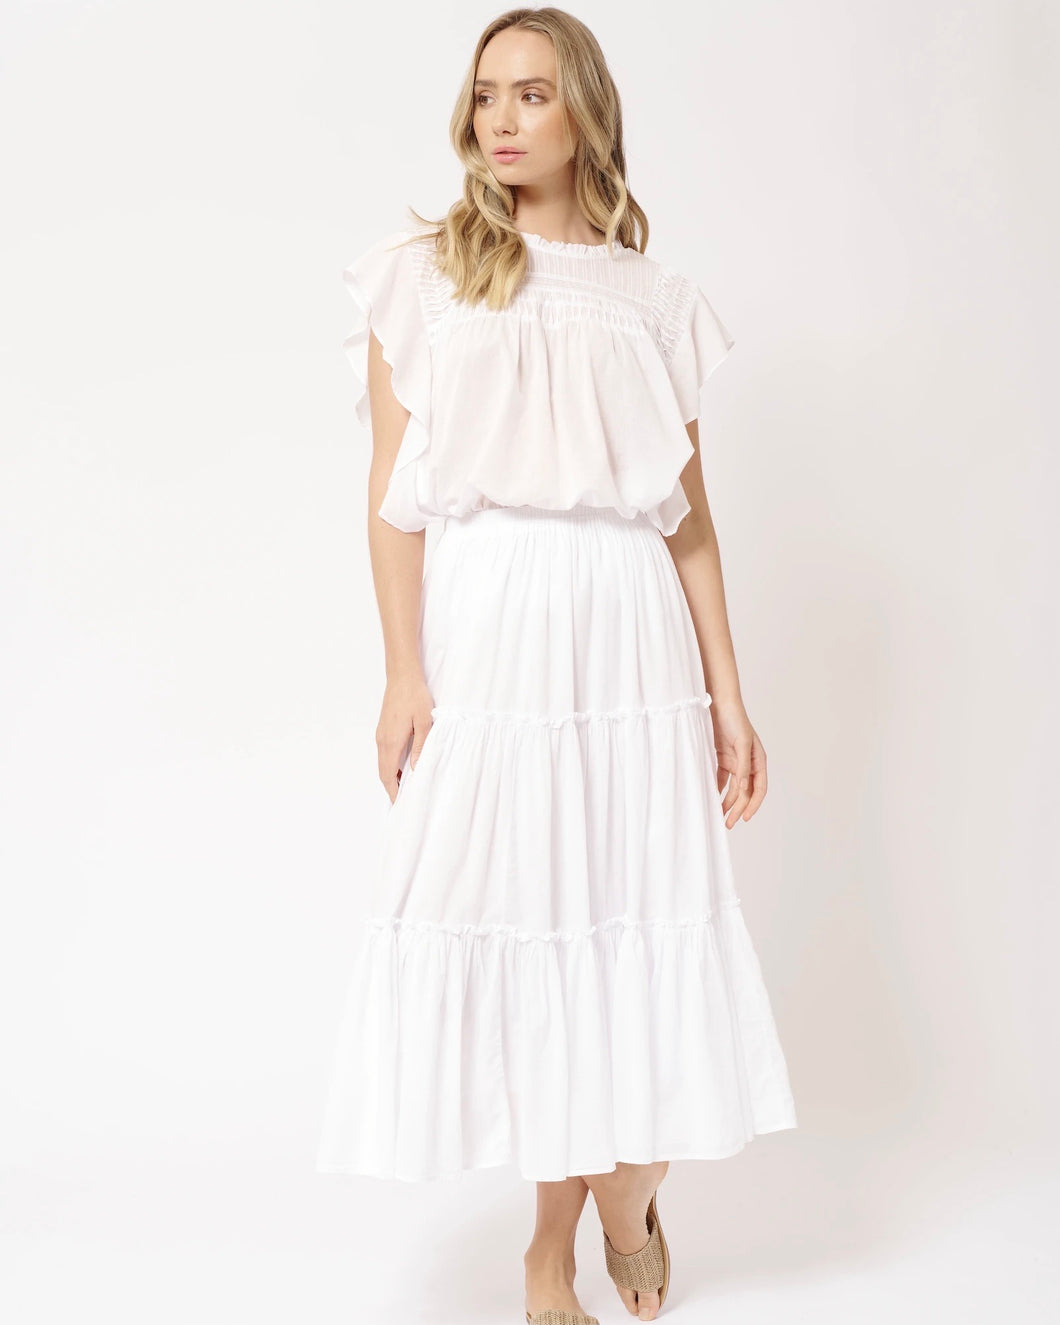 Ipanema Skirt in White by Alessandra